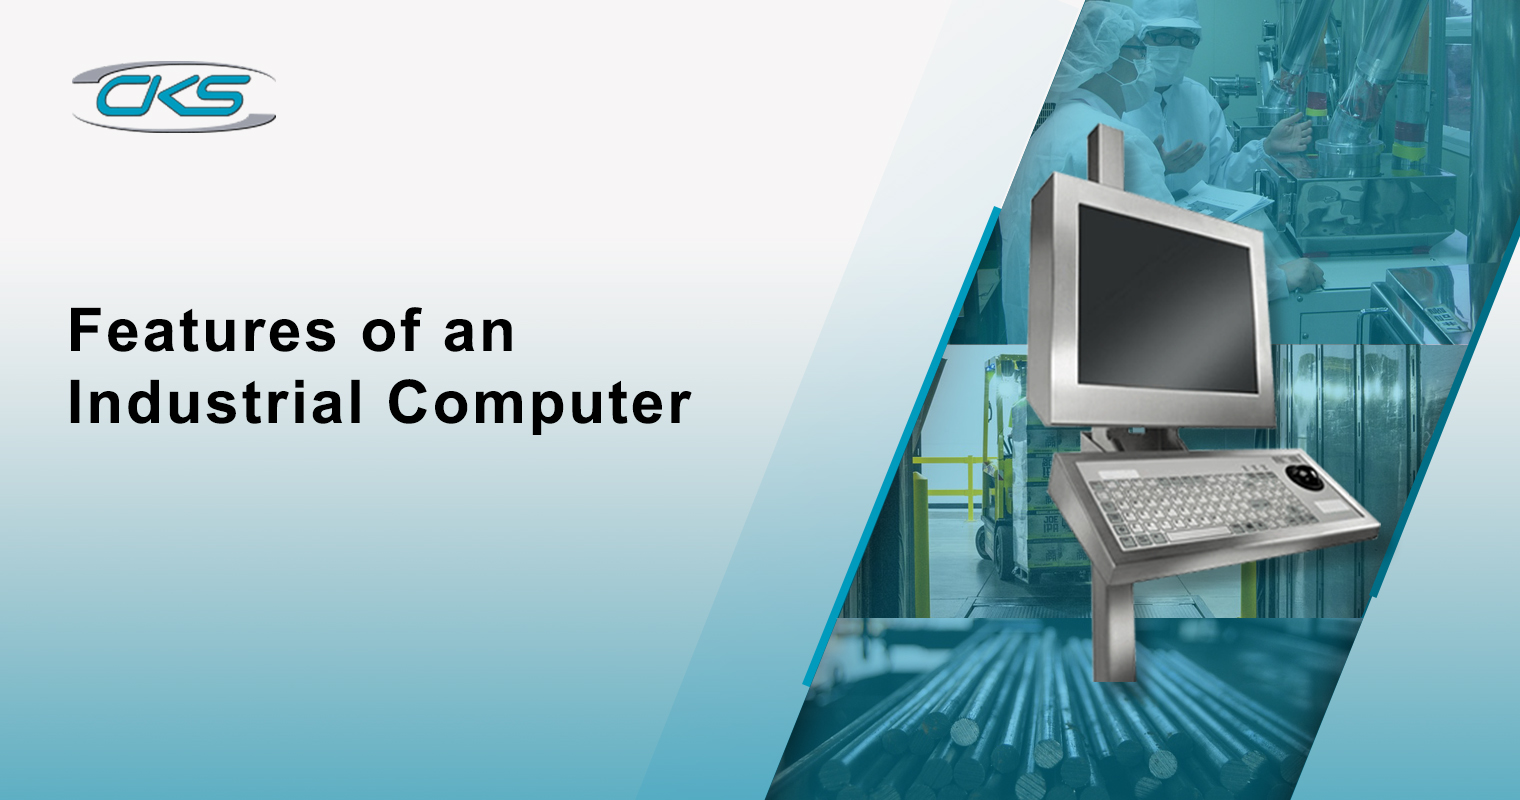 Features of an Industrial Computer